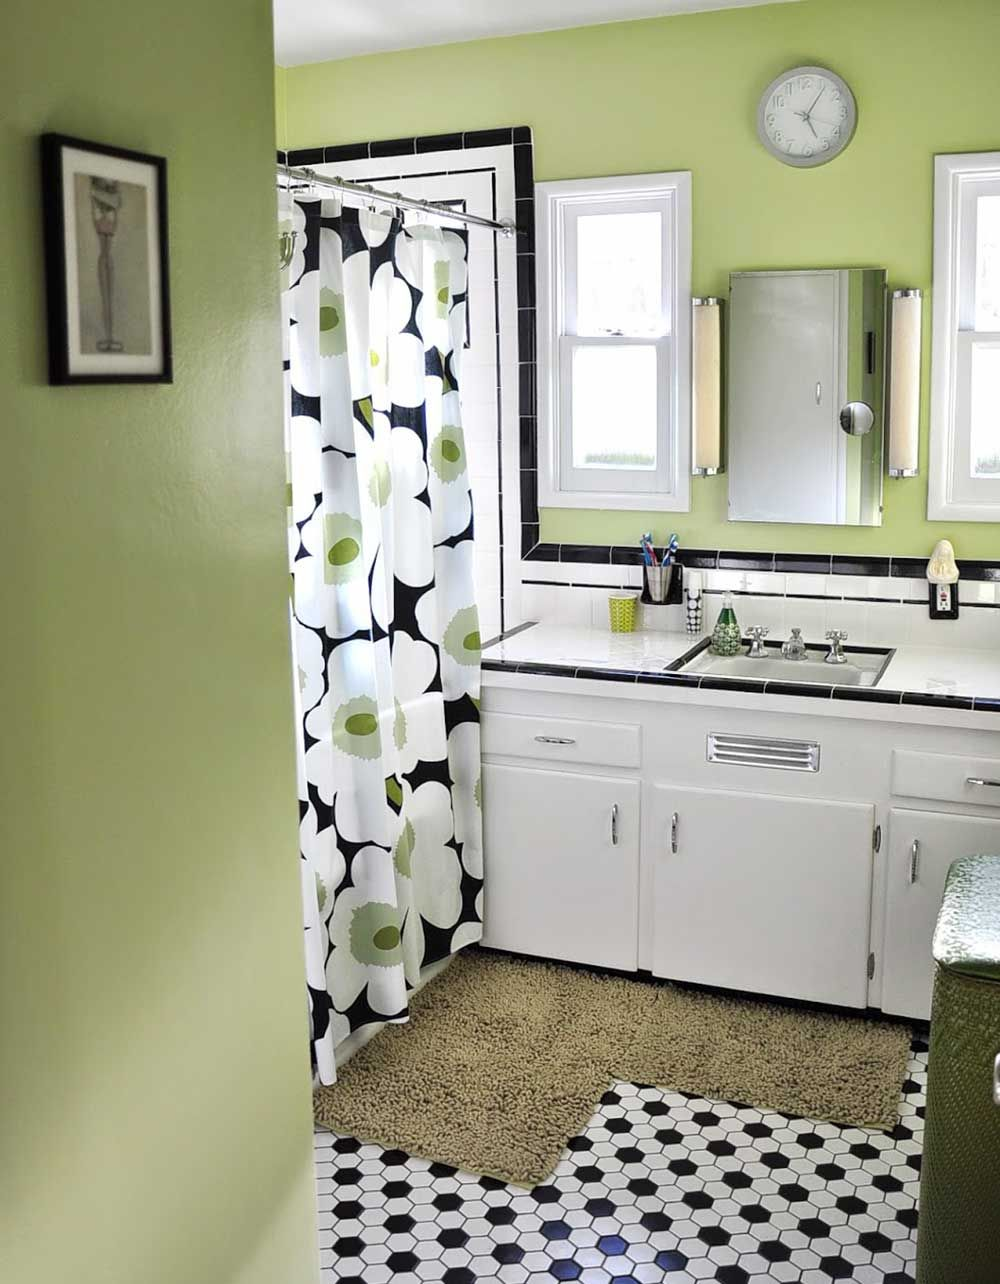 Dawn Creates A Classic Black and White Tile Bathroom Mustavalkoista